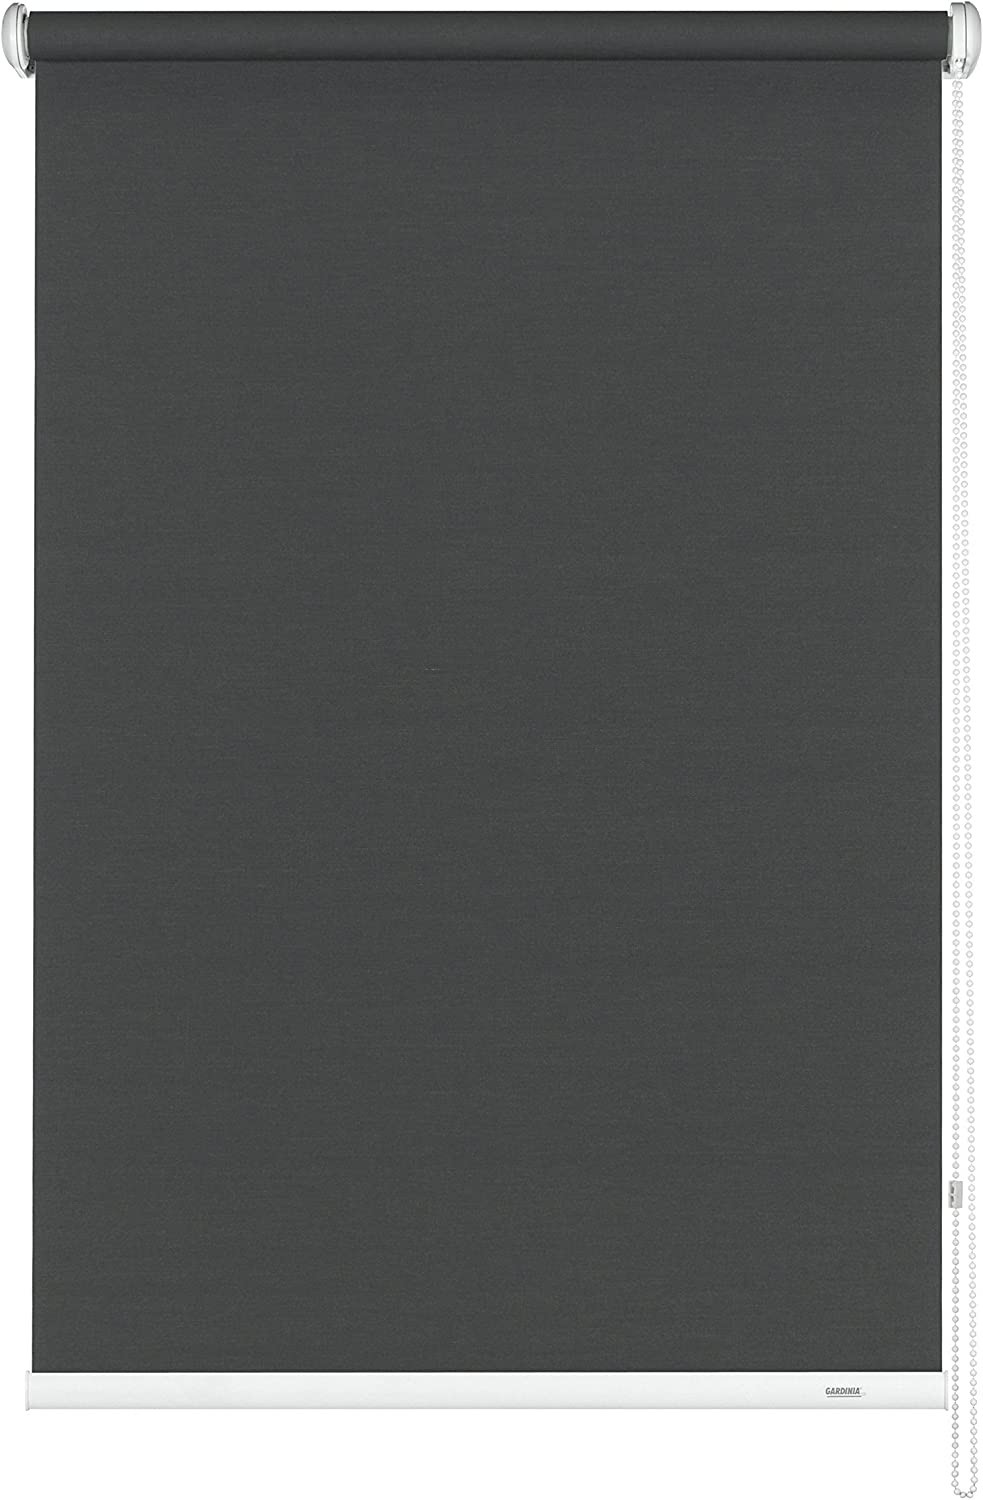 Gardinia 6820112180 - Persiana Enrollable y Estor, 100% poliéster de 112 x 180 cm, Color Gris